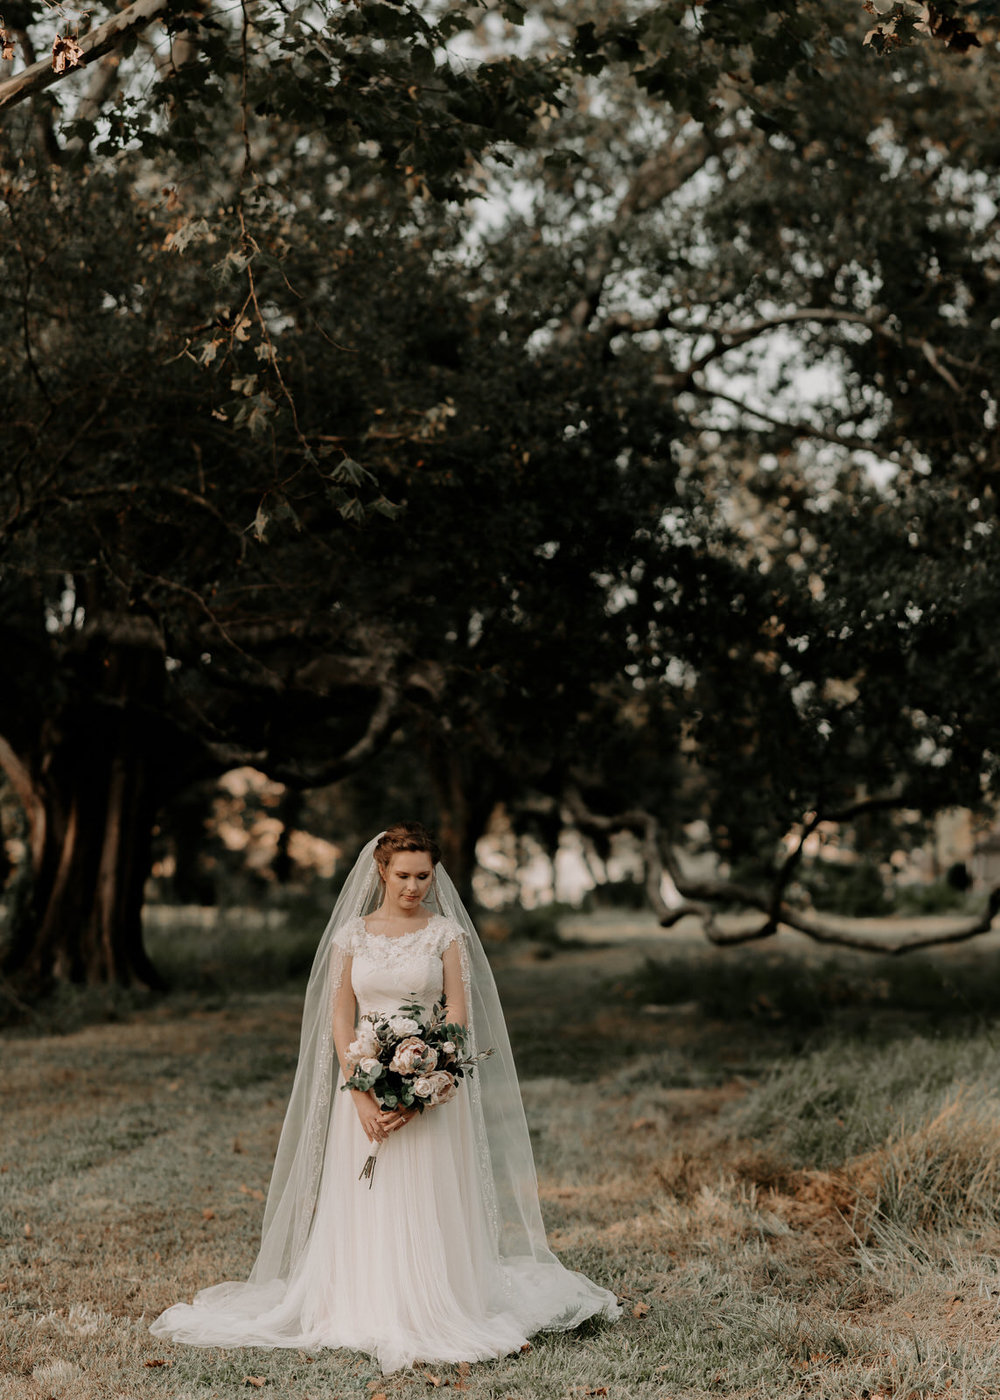 Beautiful, Simple Baton Rouge, Louisiana Bridal Session Pictures located at LSU Hilltop Arboretum Photographed by Magnolia and Grace Photography based out of Denham Springs, LA